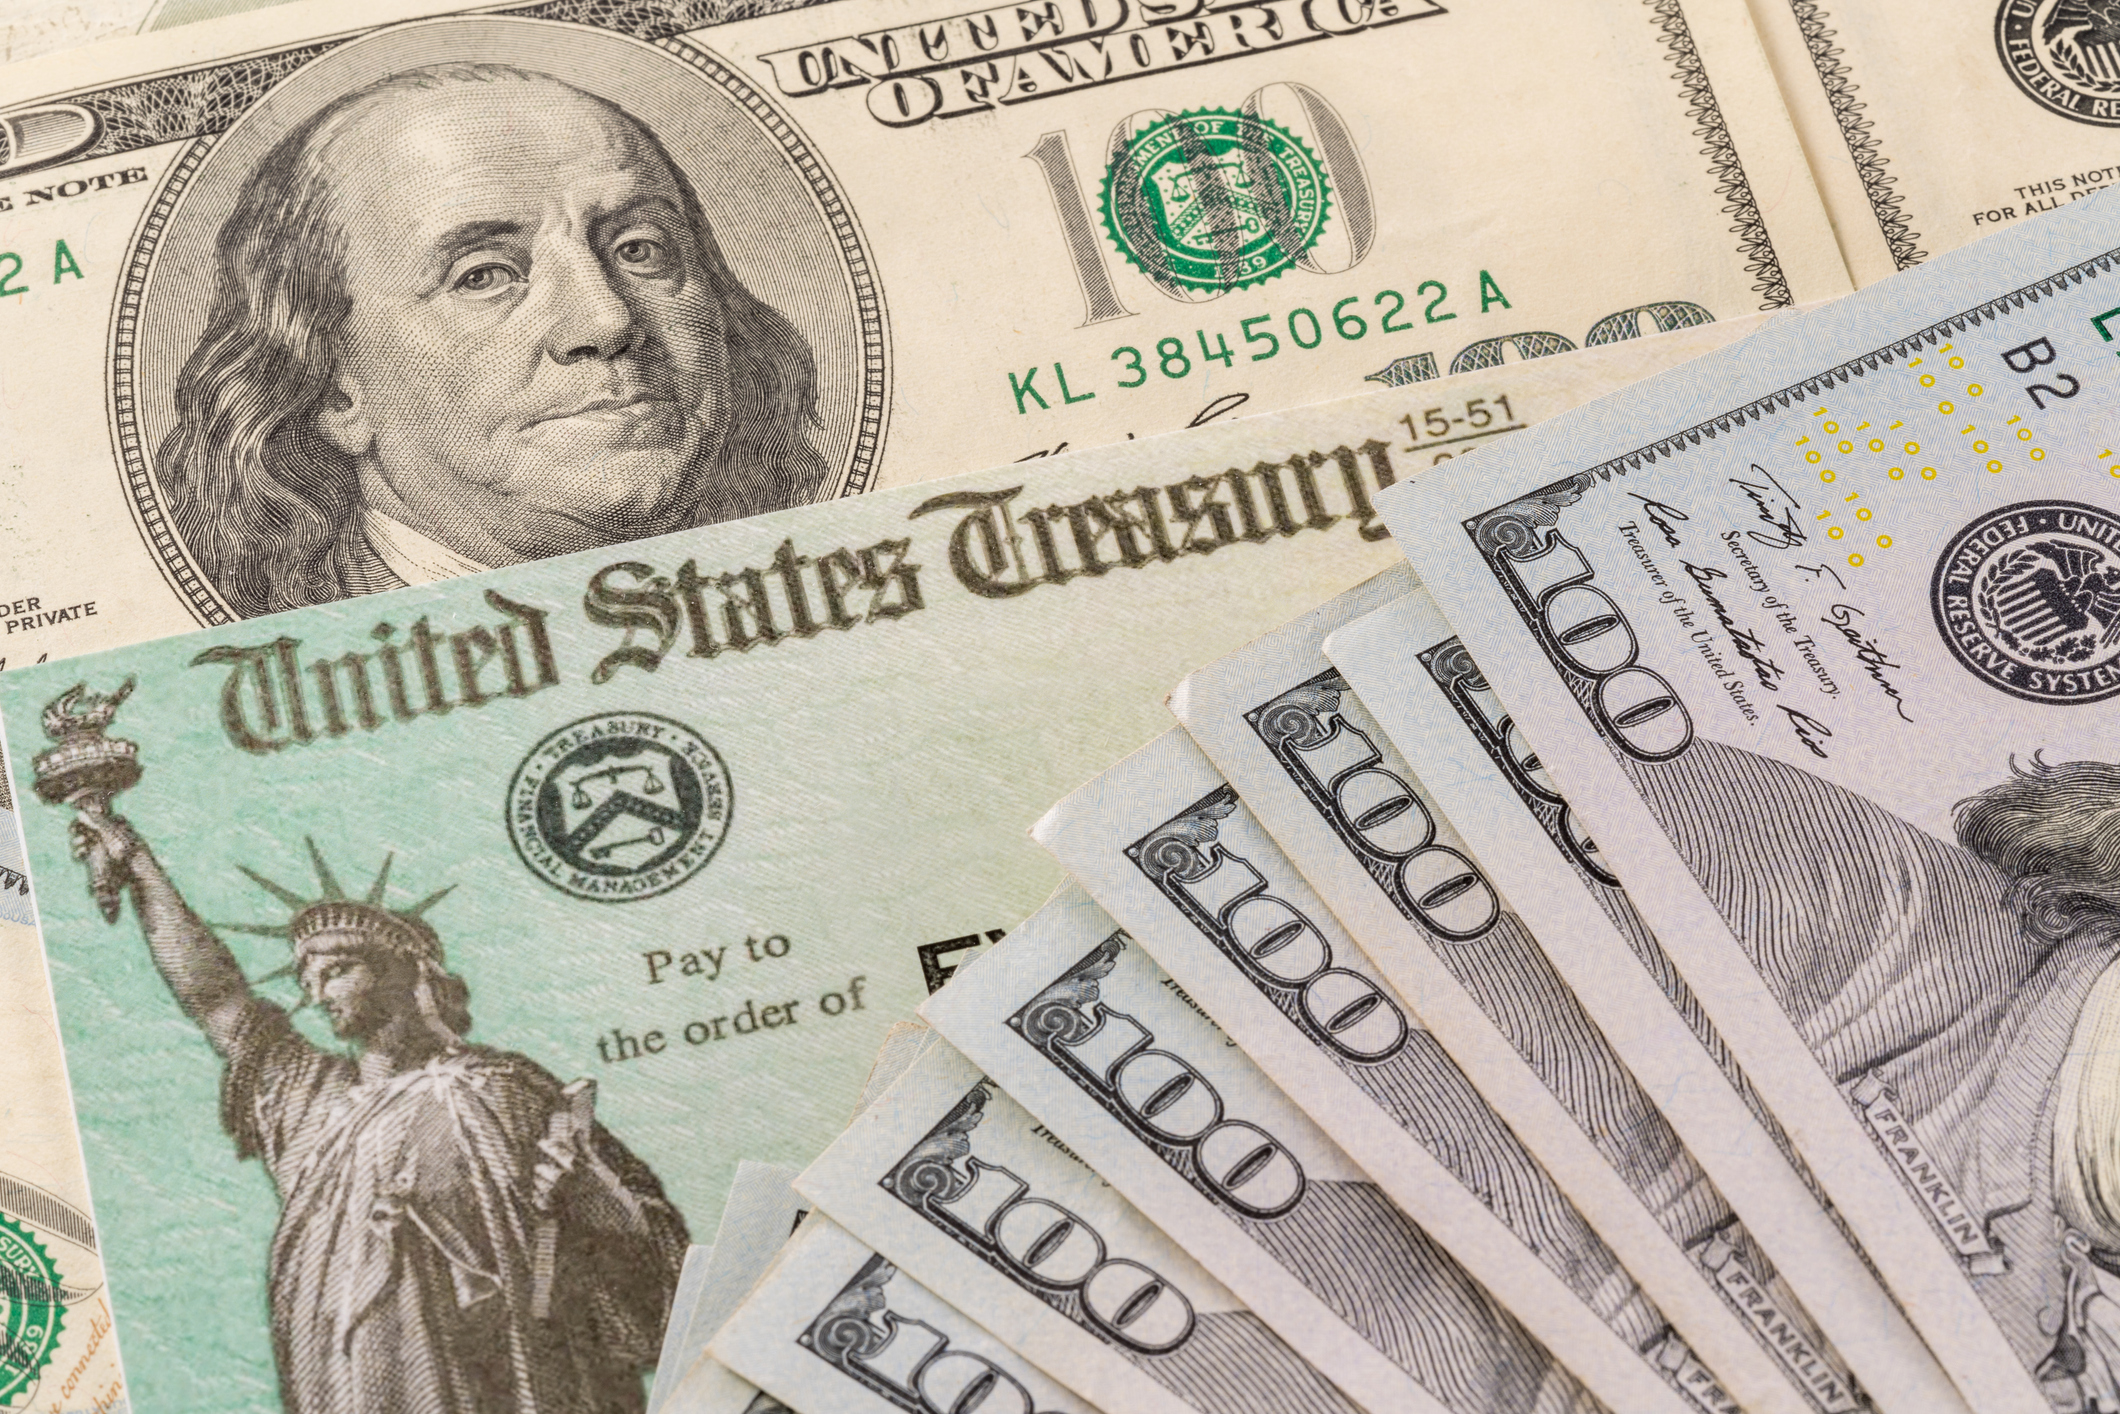 Child Tax Credit Irs Issuing 2nd Round Of Advance Payments Friday Wavy Com